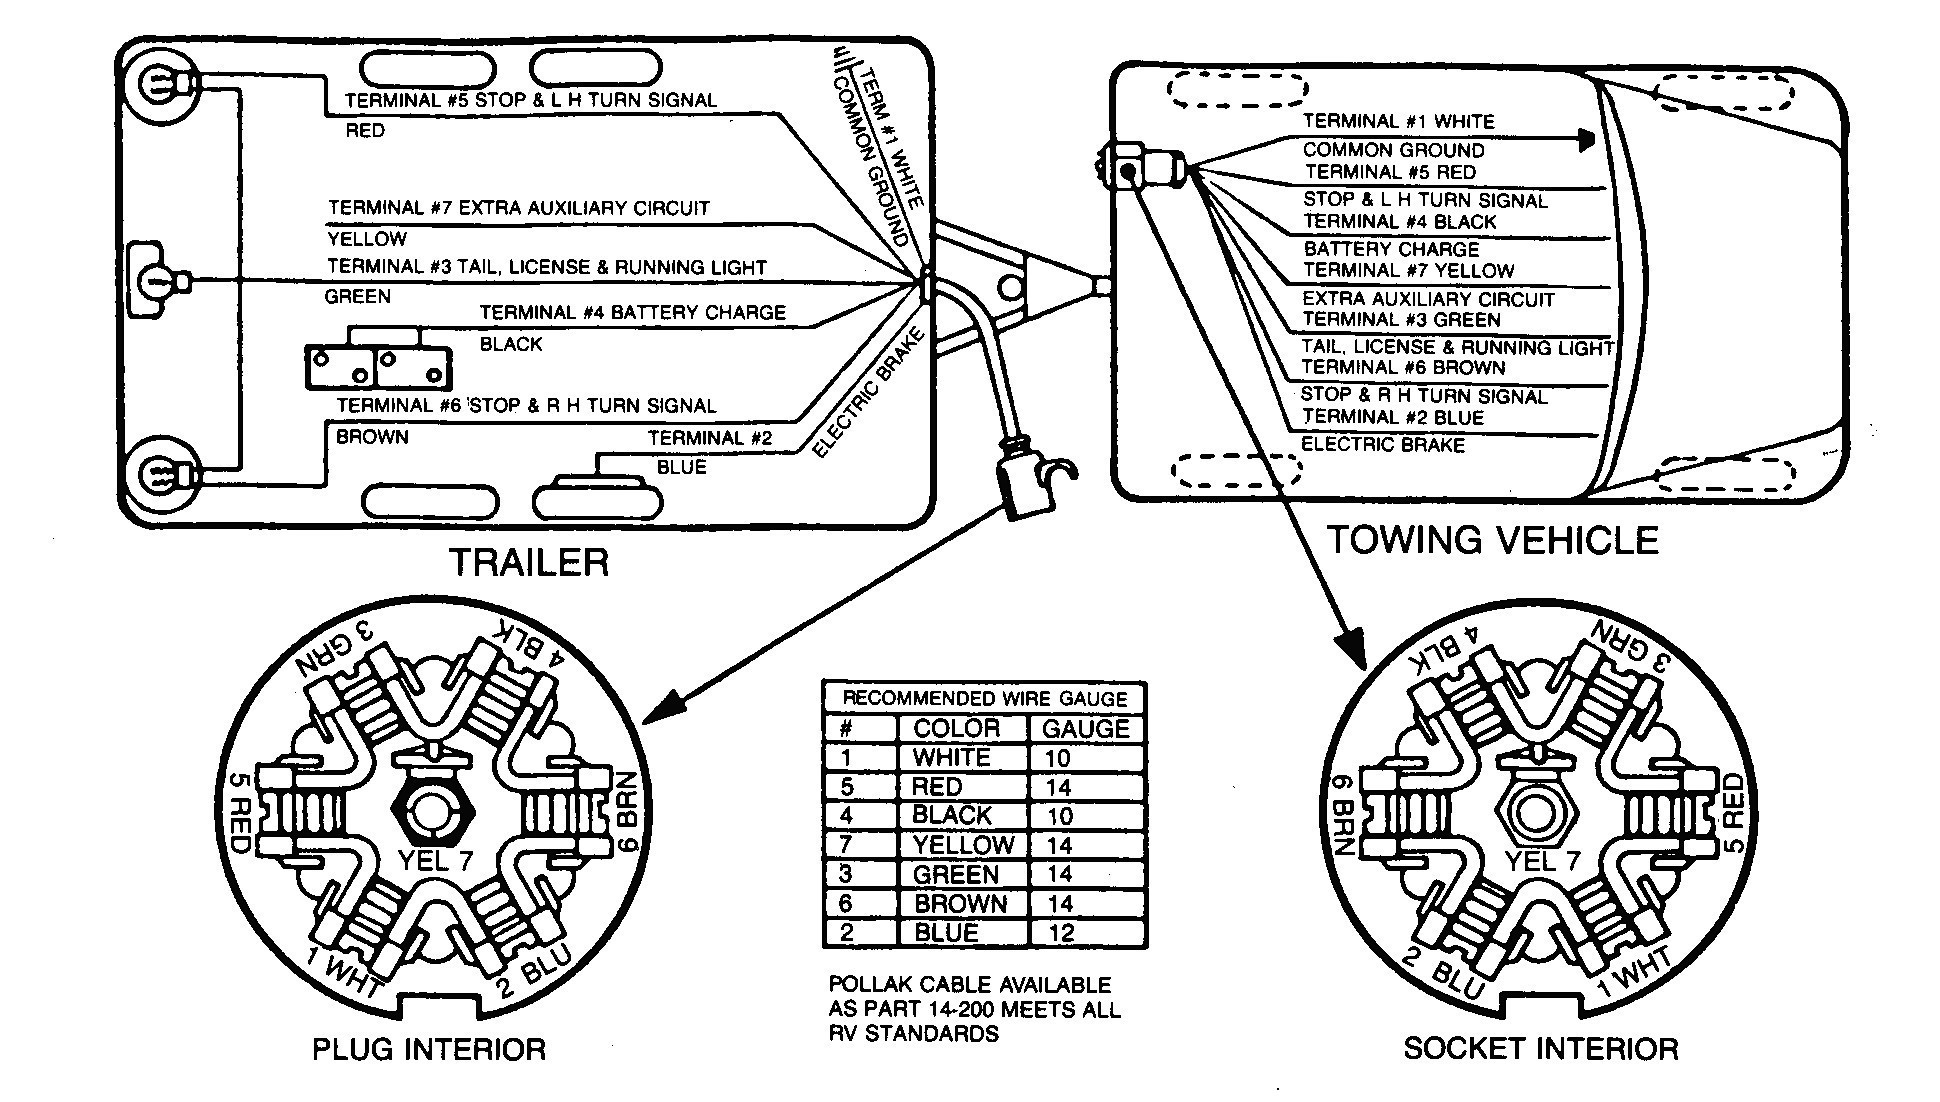 Gm 7 Pole Trailer Wiring Diagram | Wiring Library - Utilux Trailer Wiring Diagram